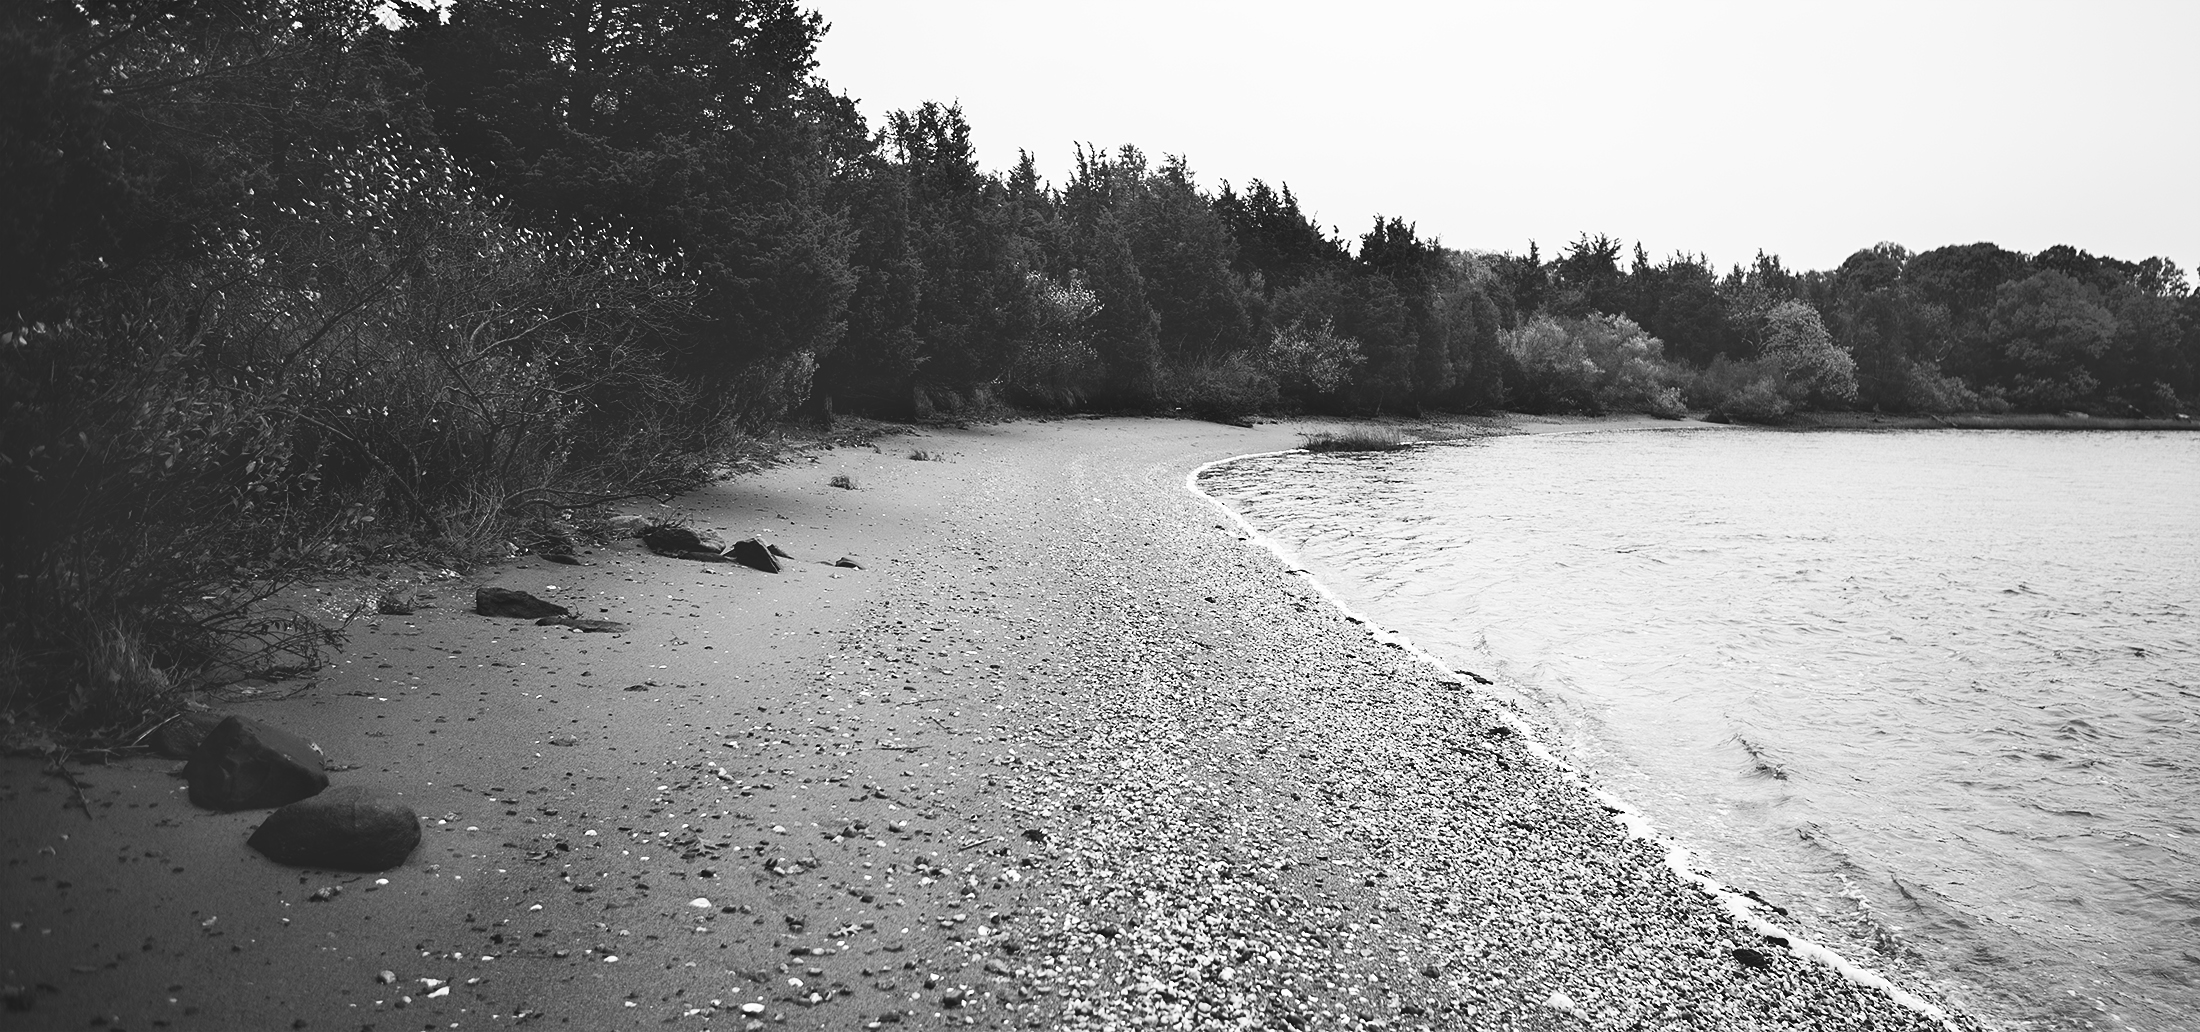 Cold and deserted beach. Part 248.